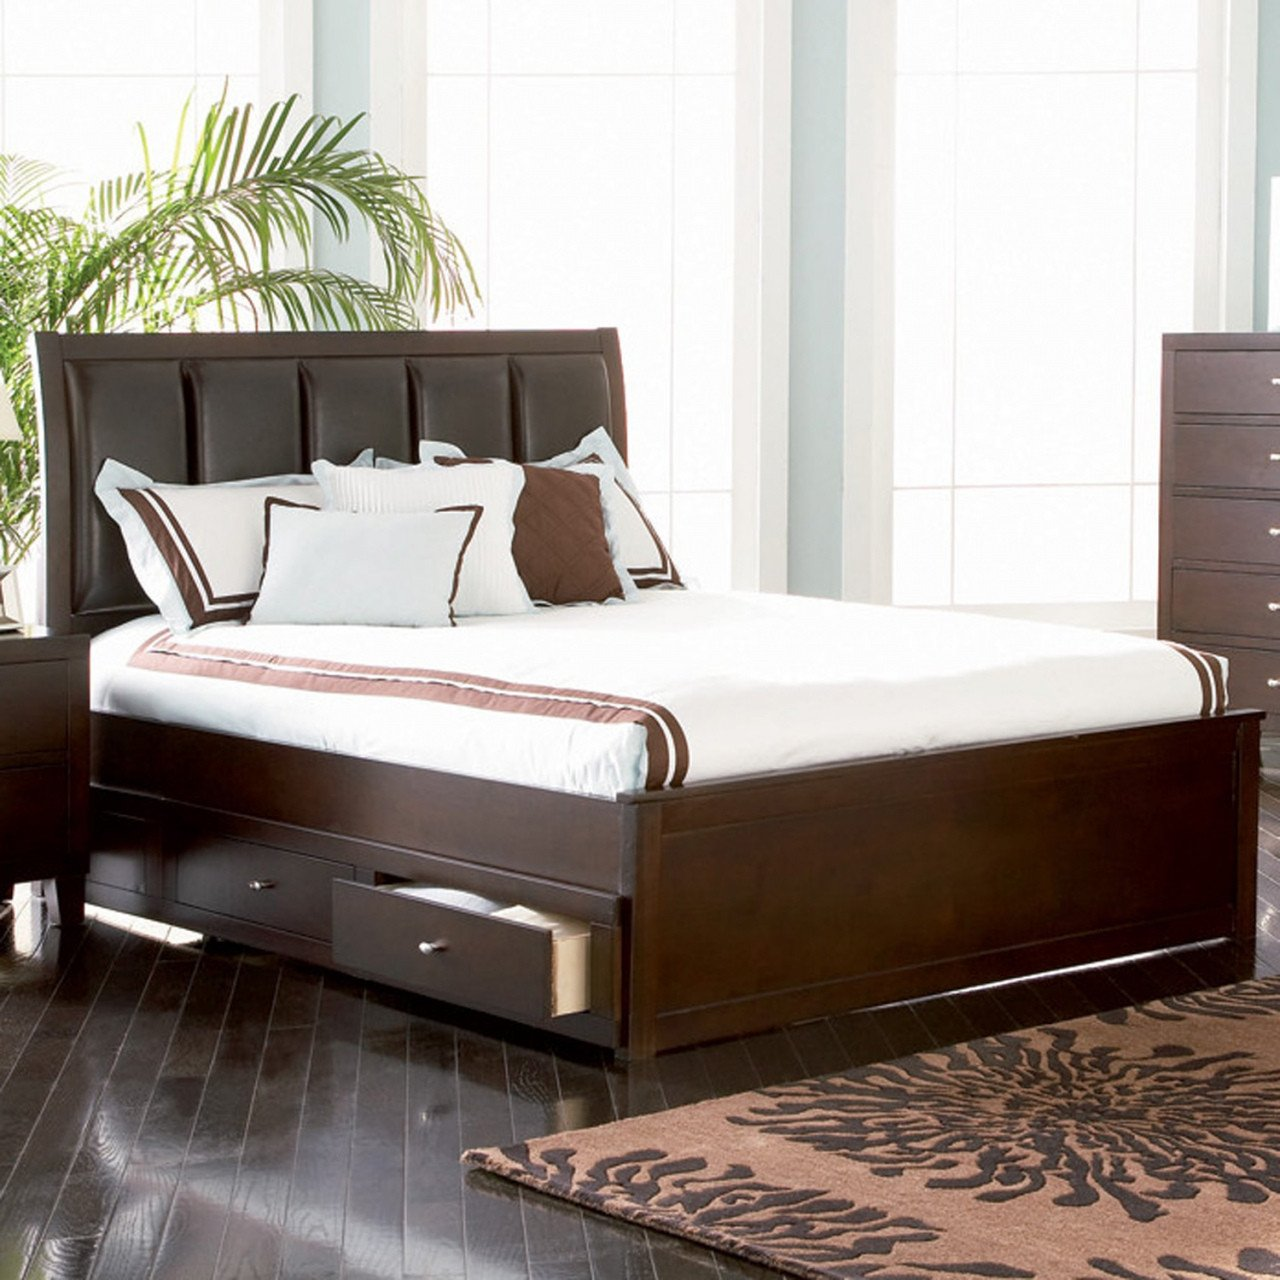 King Size Bedroom Benches Beautiful Full Size Bed with Storage Drawers Underneath — Procura Home